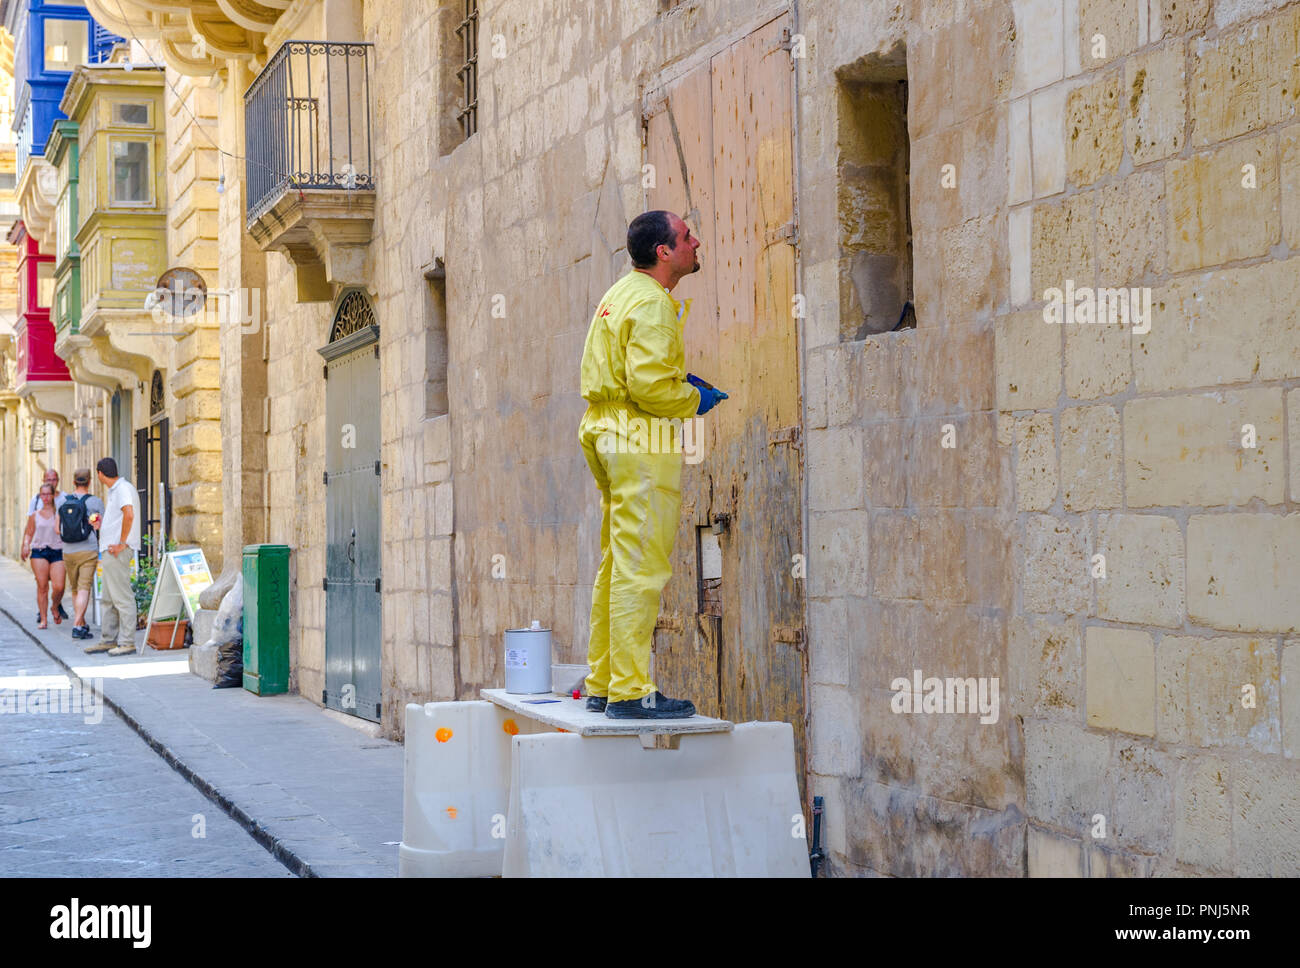 Workman using paint stripper wearing overalls but no eye protection. - Stock Image